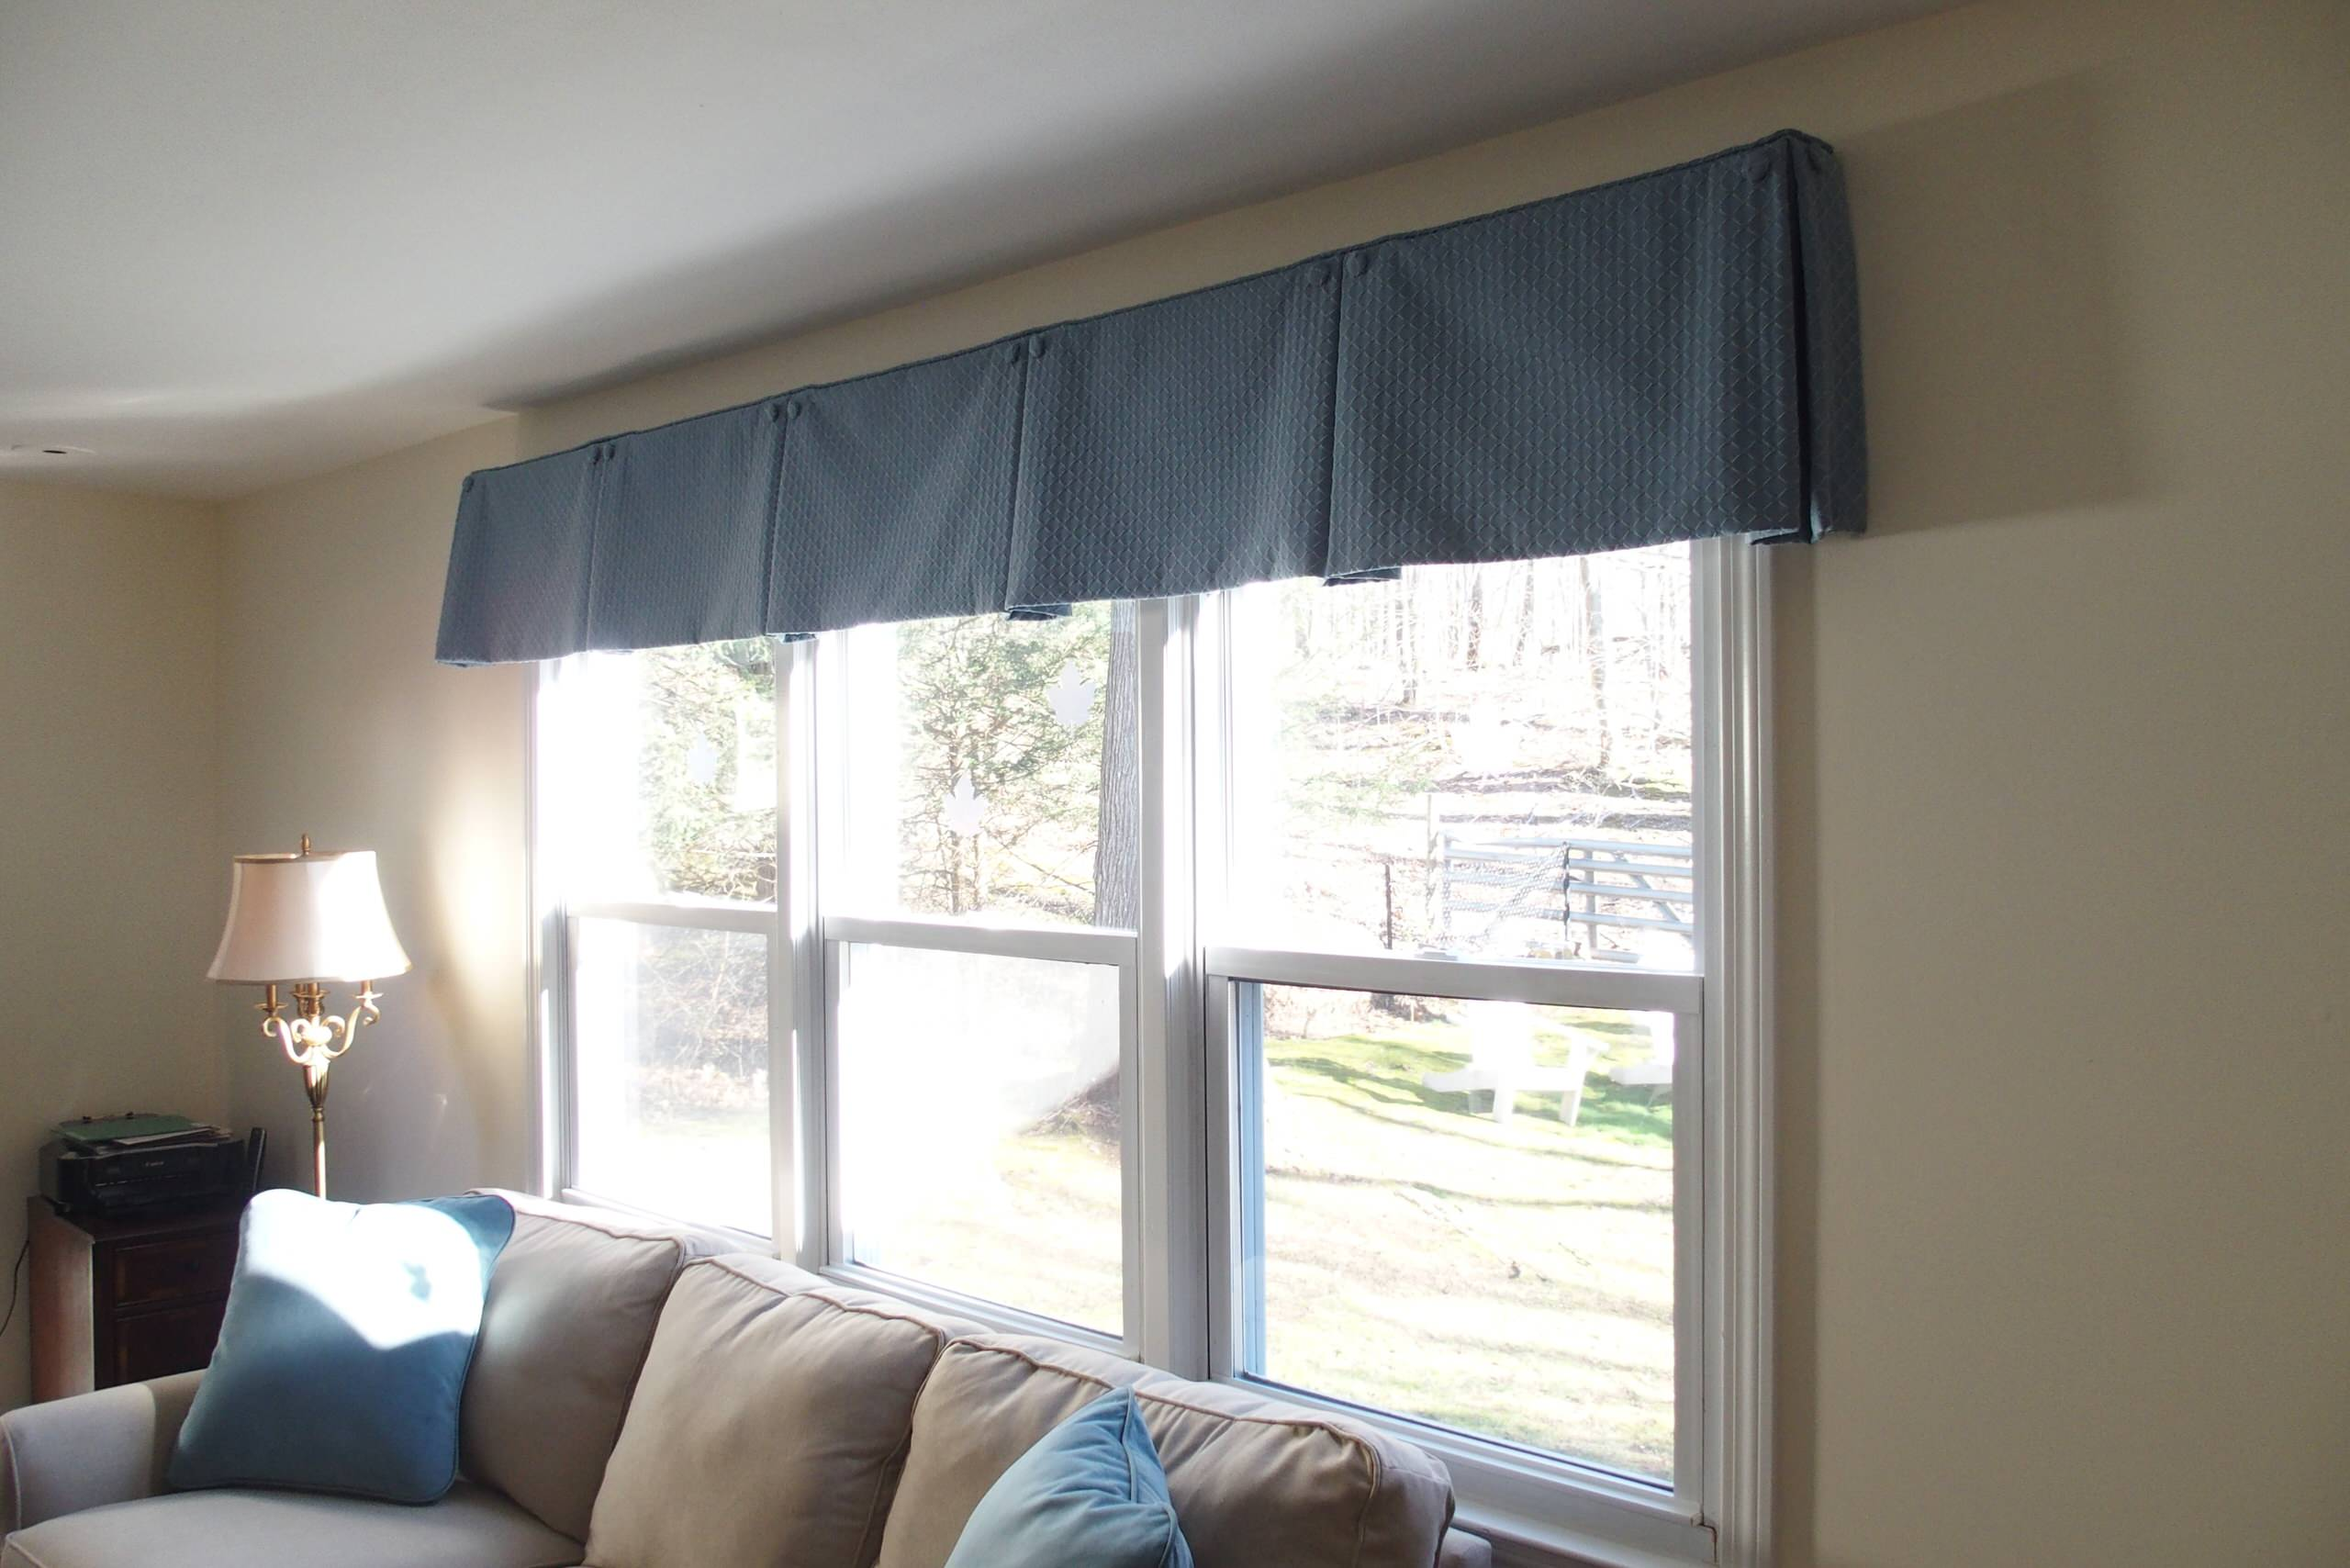 Box pleat valances enhanced with covered buttons in a quiet study